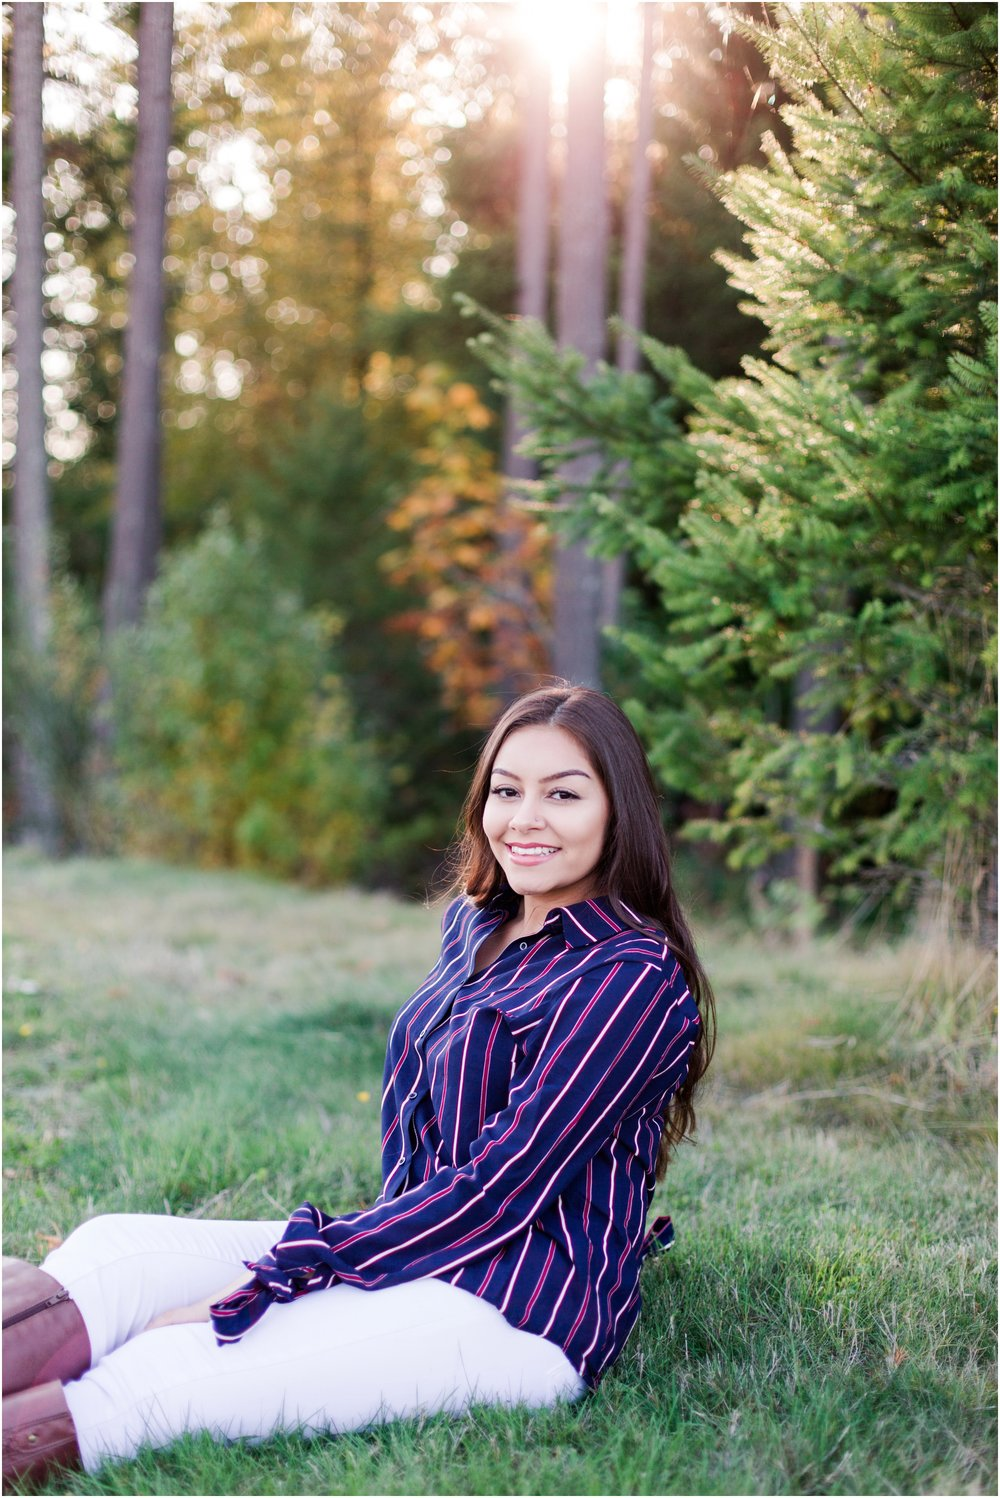 High School Senior portriats by Briana Calderon Photography based in the Greater Seattle & Tacoma, WA_0944.jpg